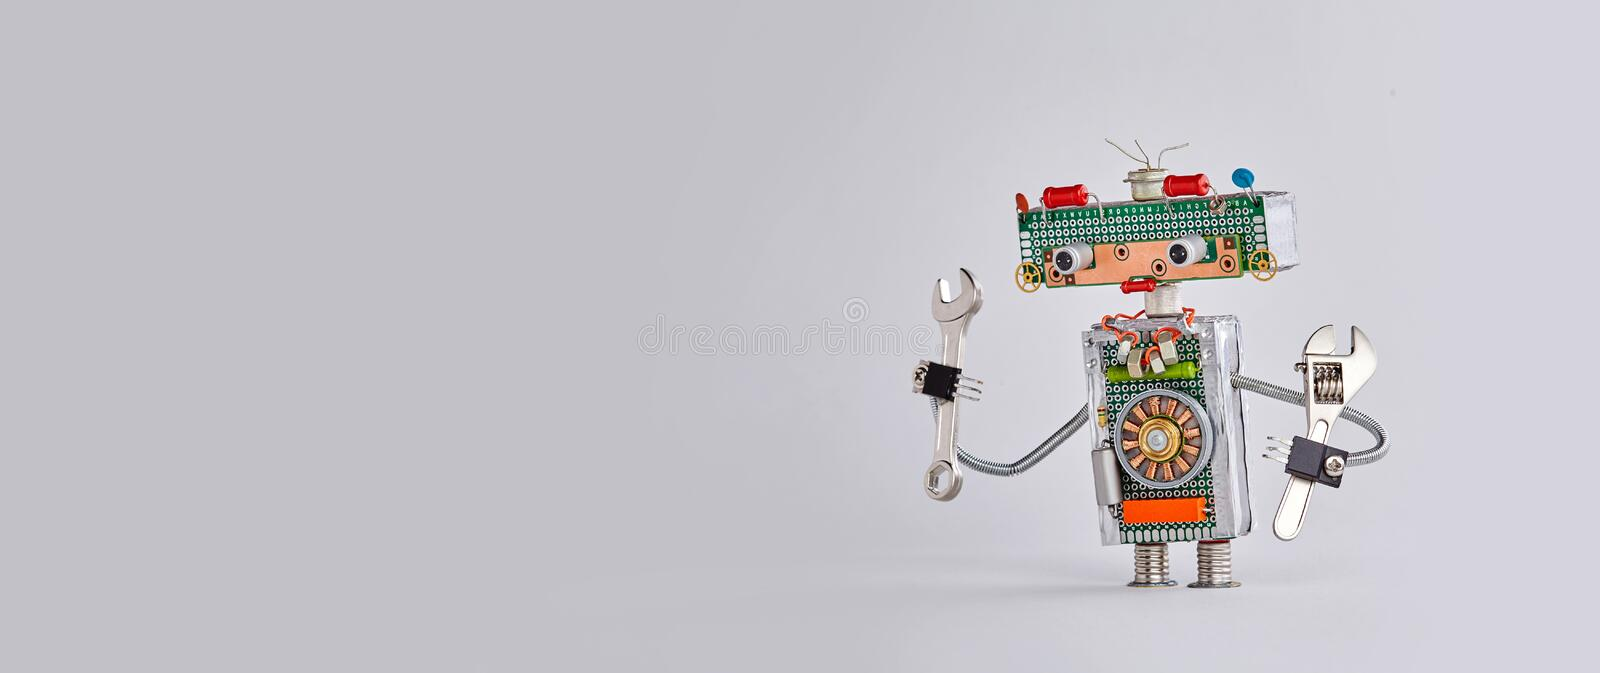 Automation maintenance robotic service works concept. Hand wrench adjustable spanner robot handyman on gary background. Copy space stock photography